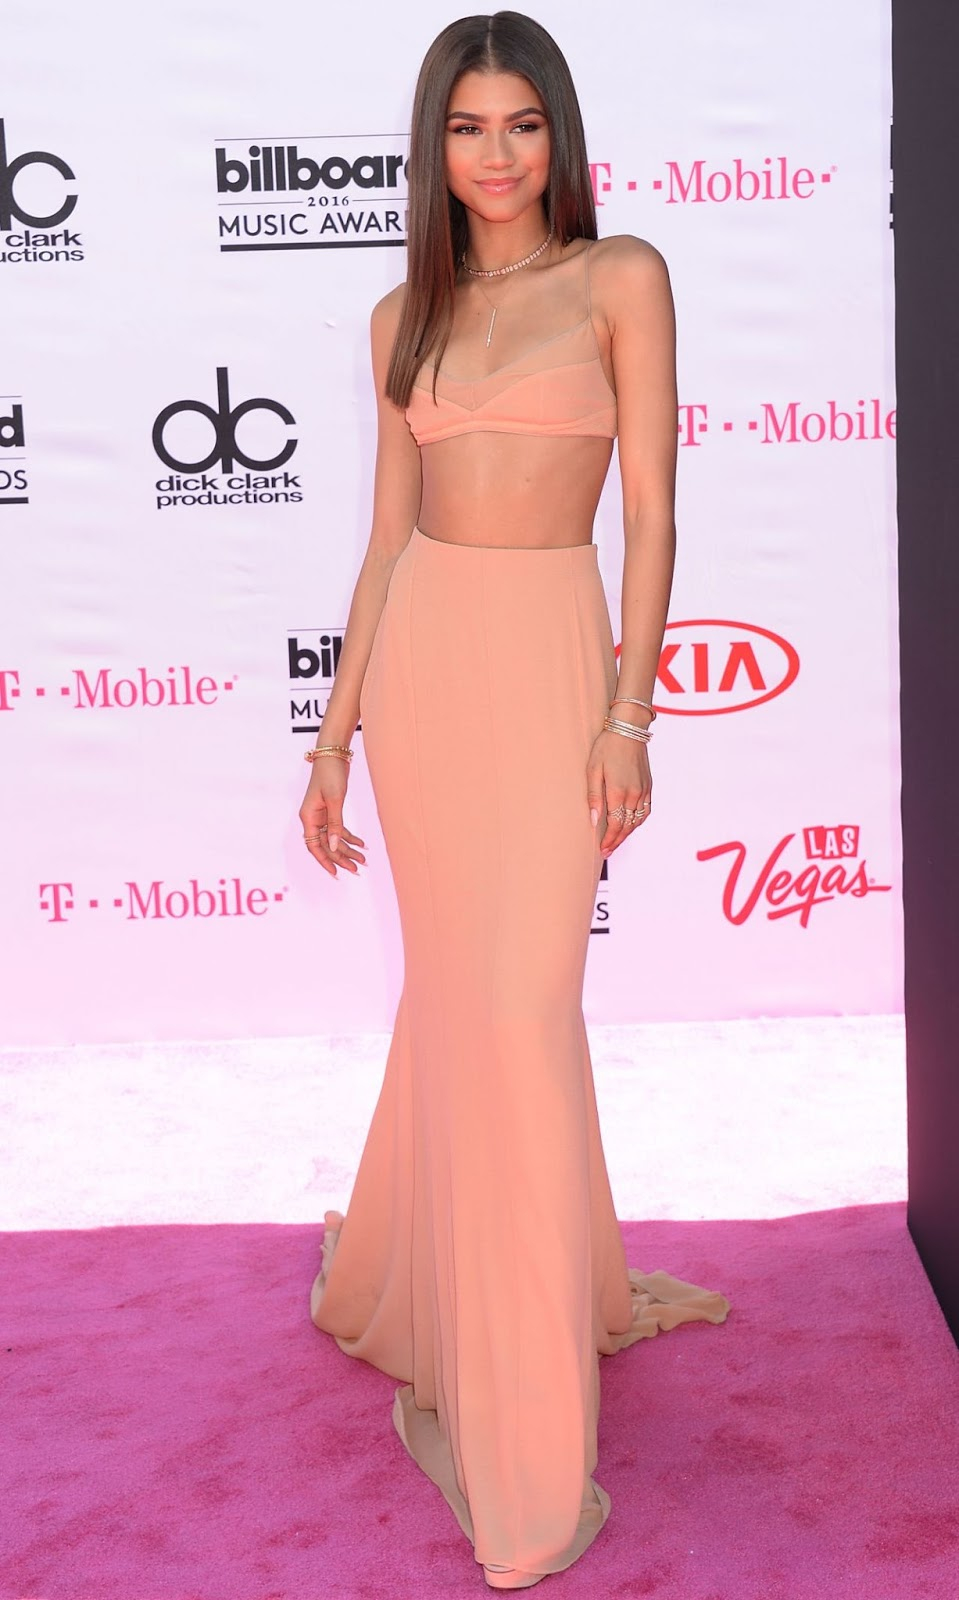 Zendaya flaunts toned physique in nude ensemble at the 2016 Billboard Music Awards